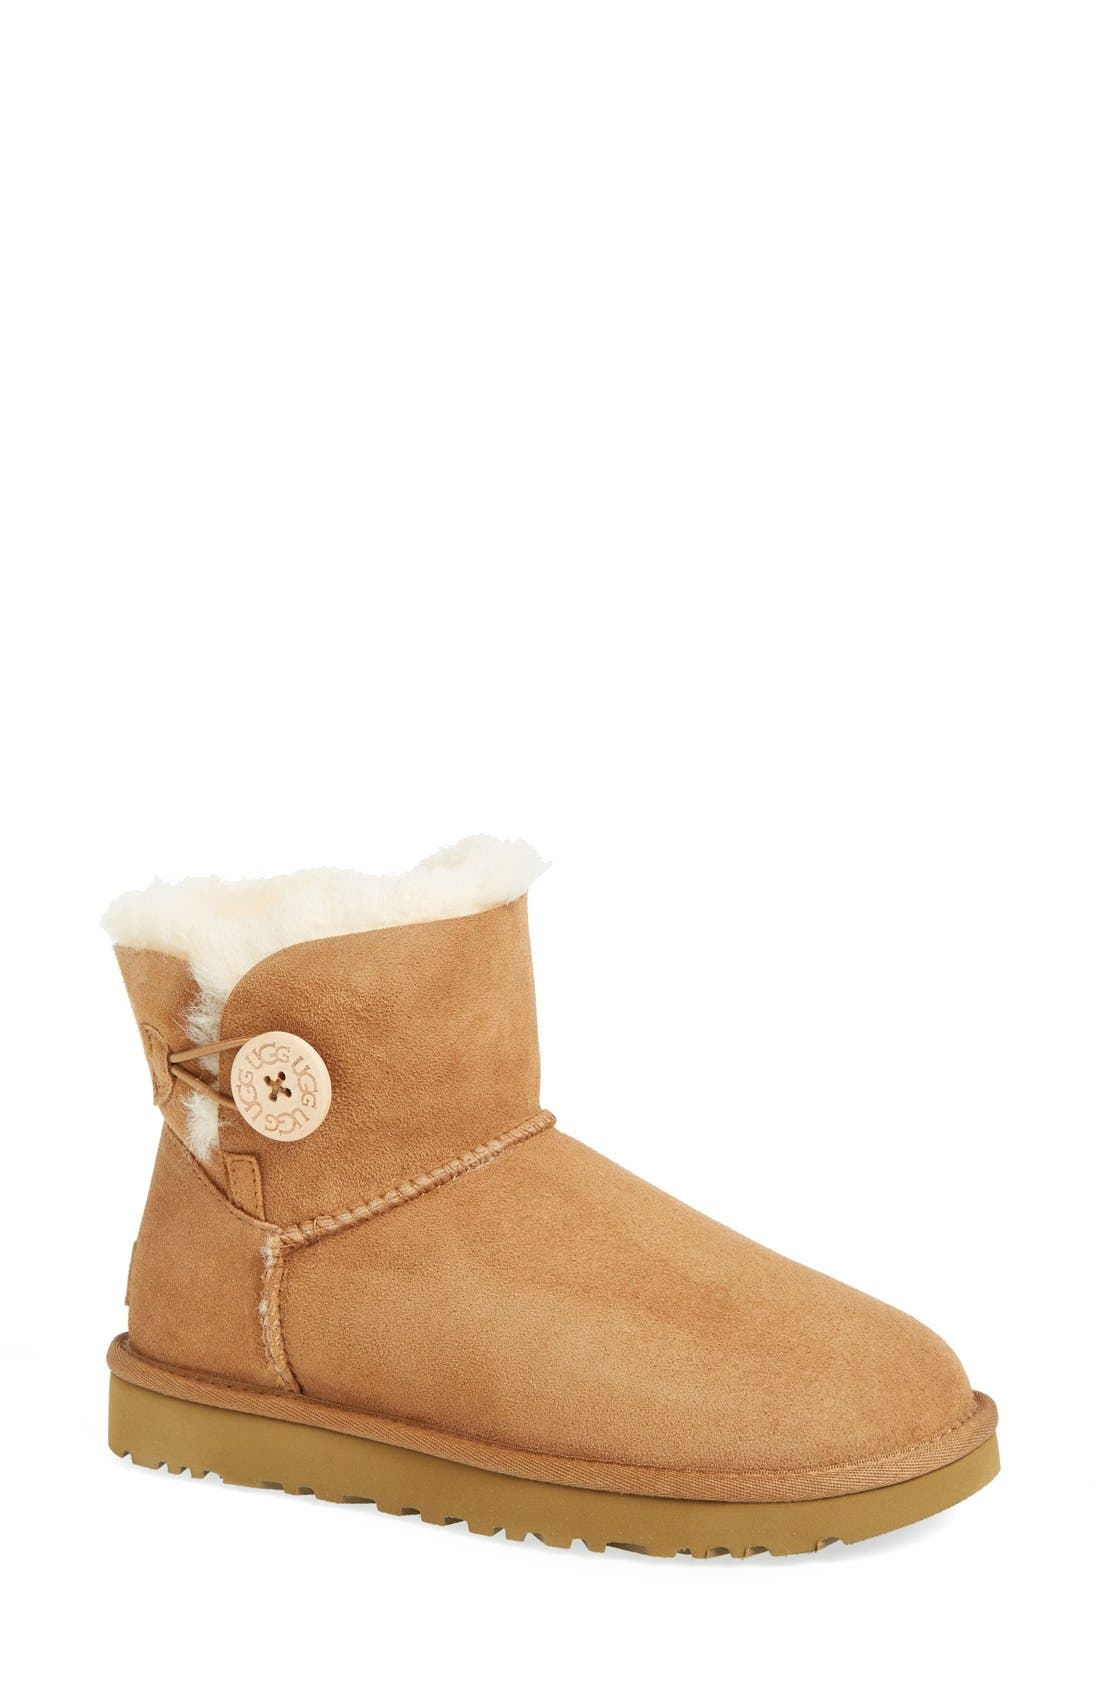 Mini Bailey Button Ii Ankle Boots in Chestnut Suede